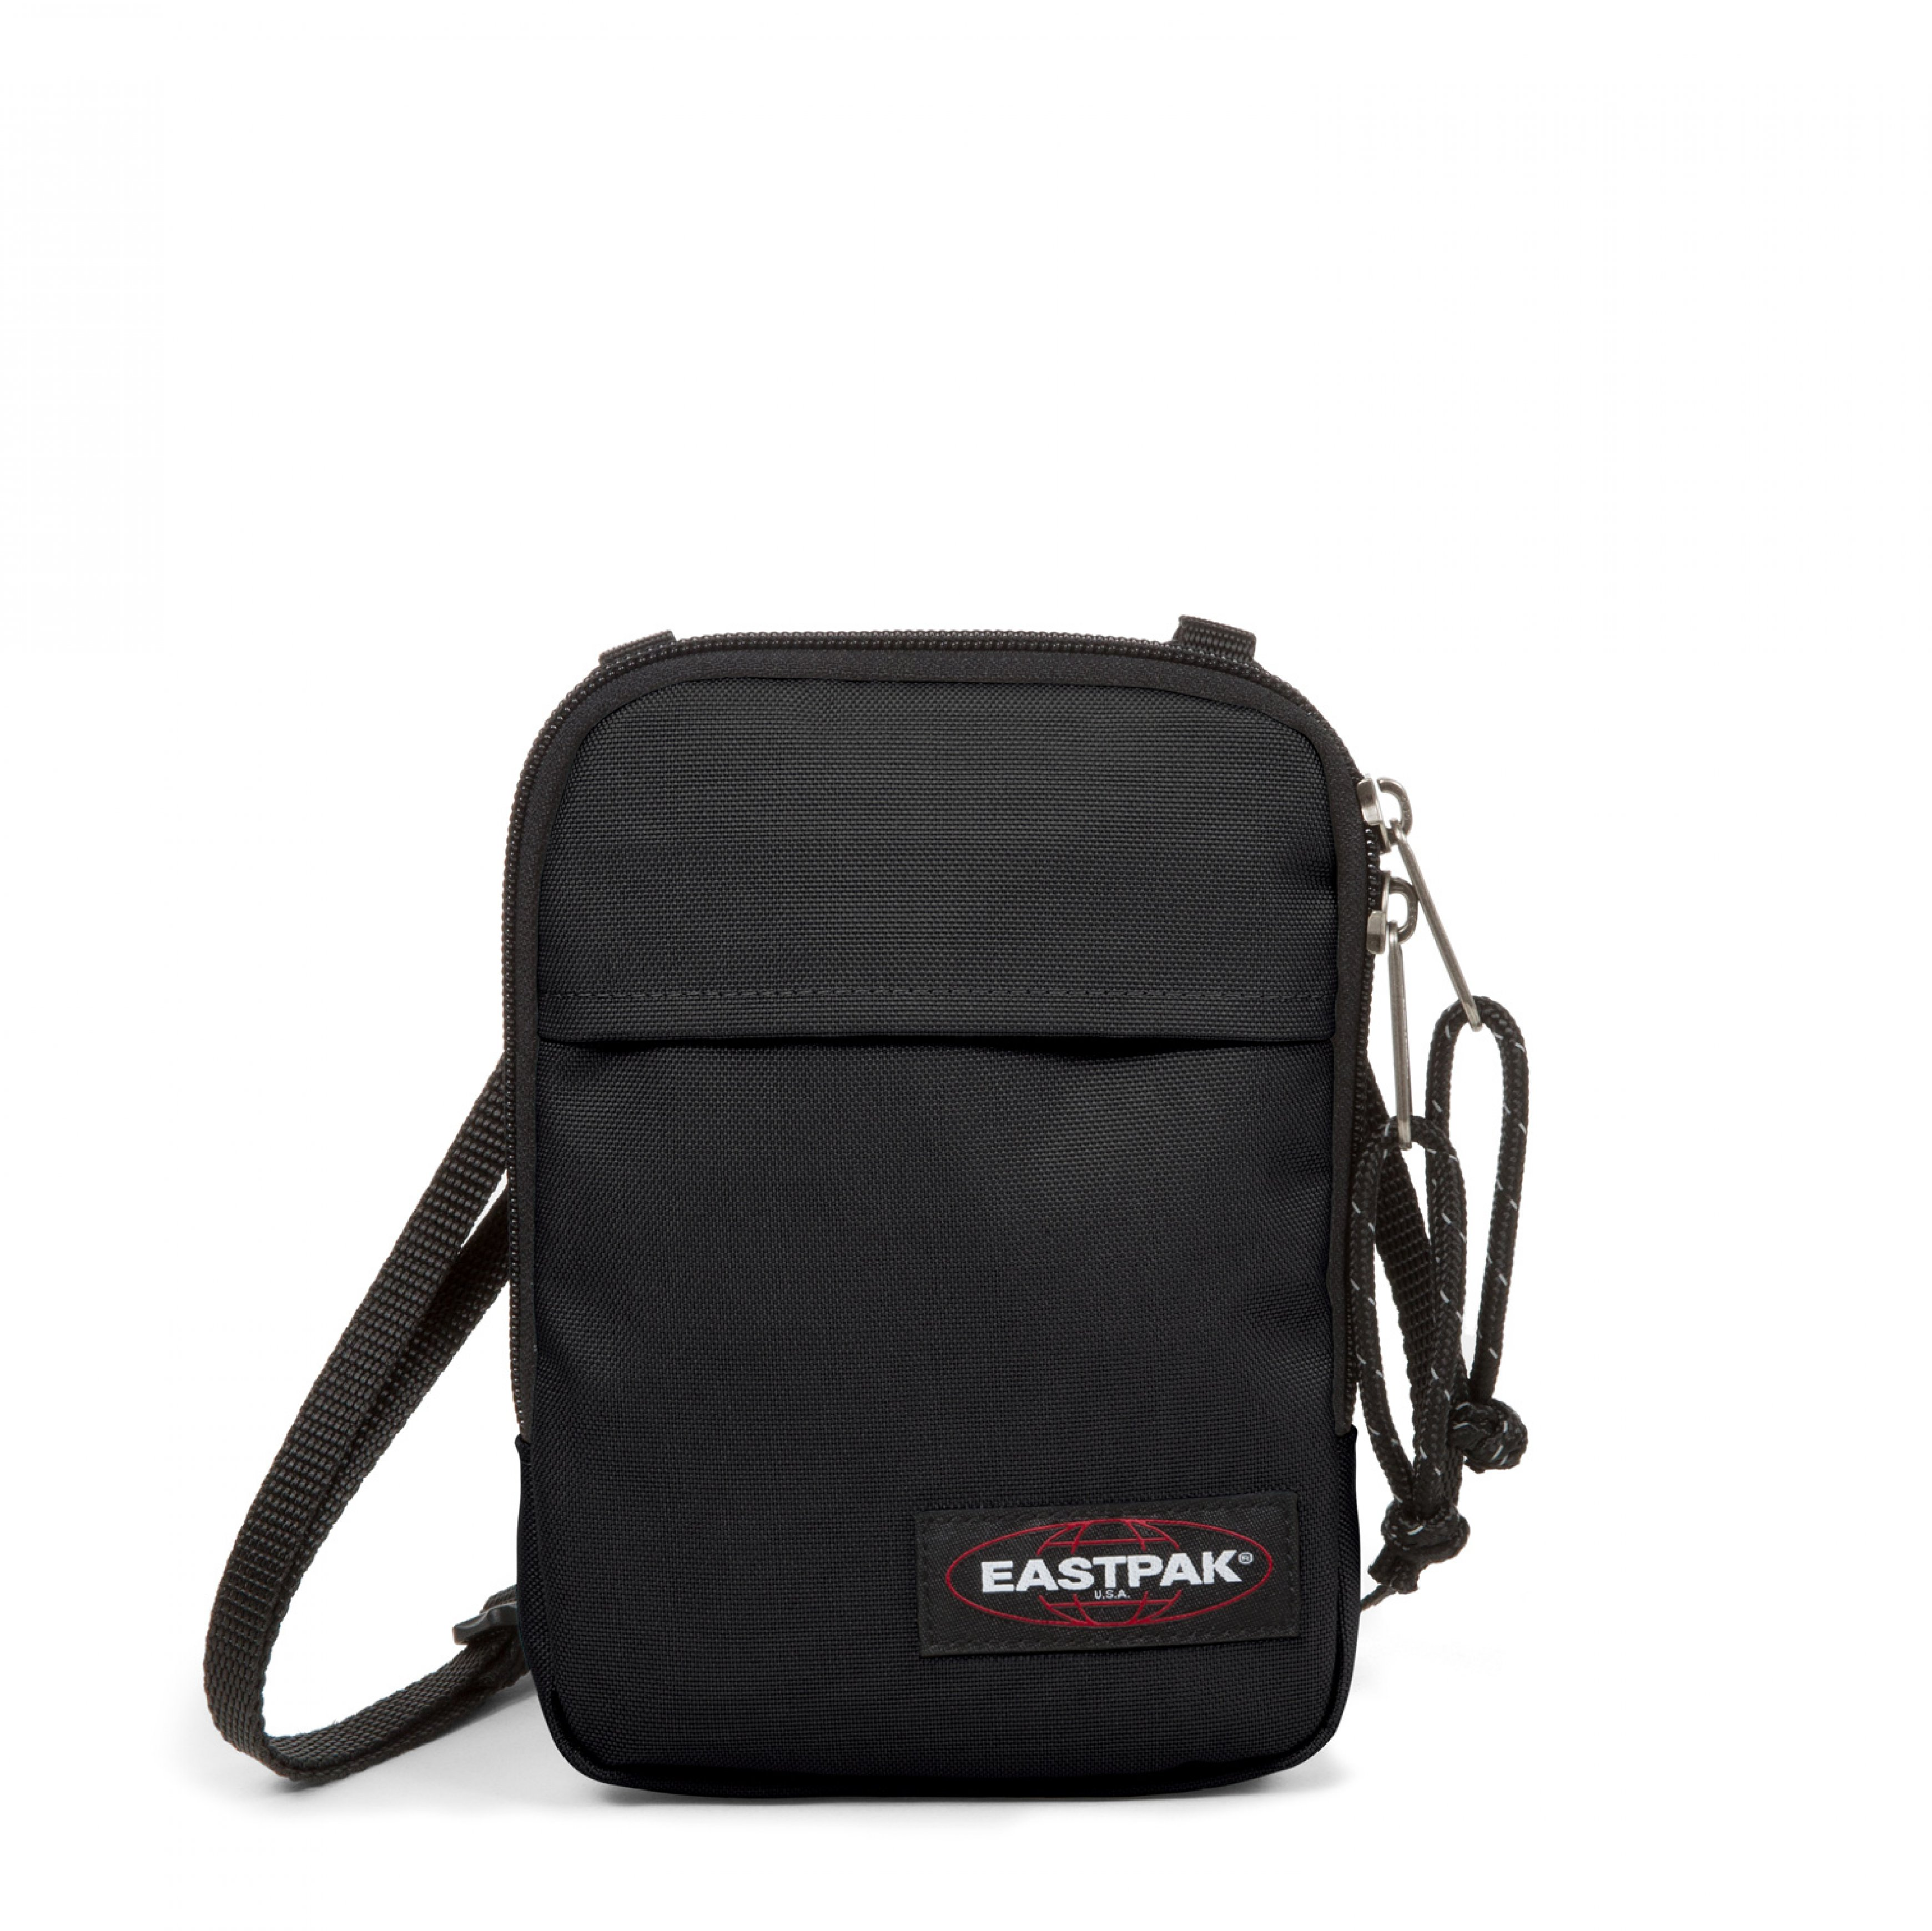 [EASTPAK] AUTHENTIC 숄더백 버디 EKCBS01 8